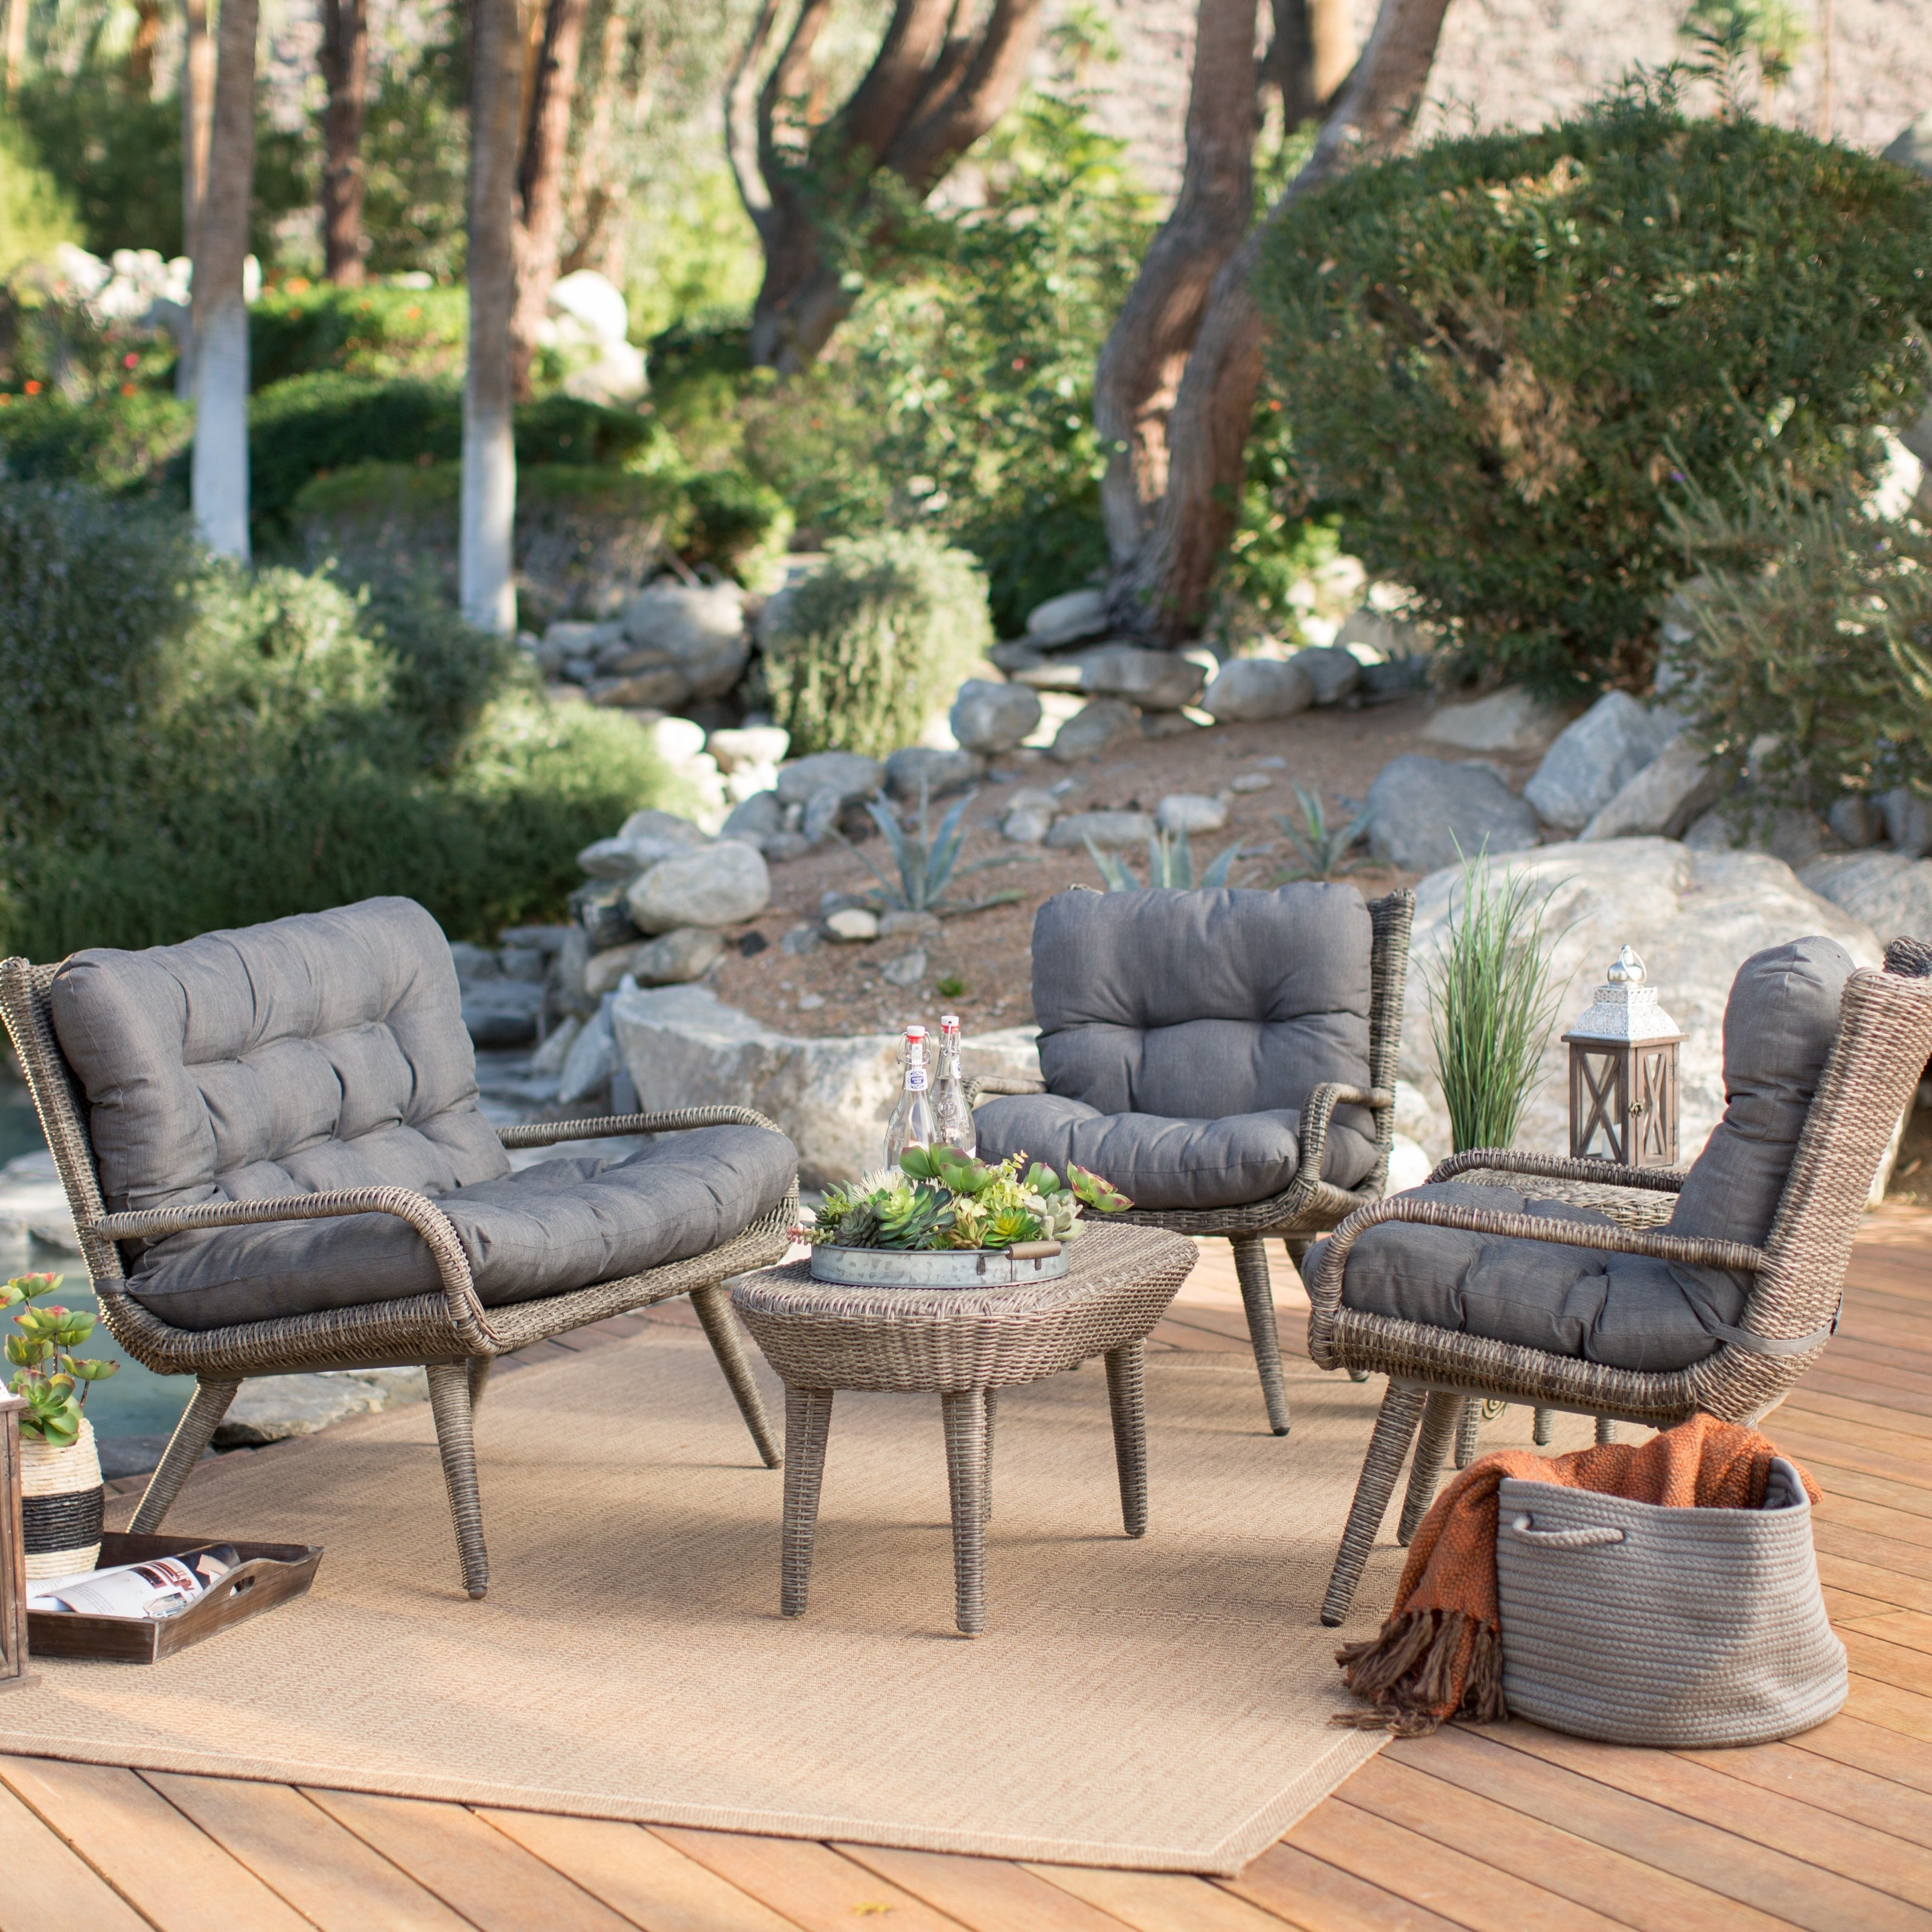 Furniture: Exciting Outdoor Furniture With Gray Cushions On Beige For Most Current Gray Patio Conversation Sets (View 13 of 15)